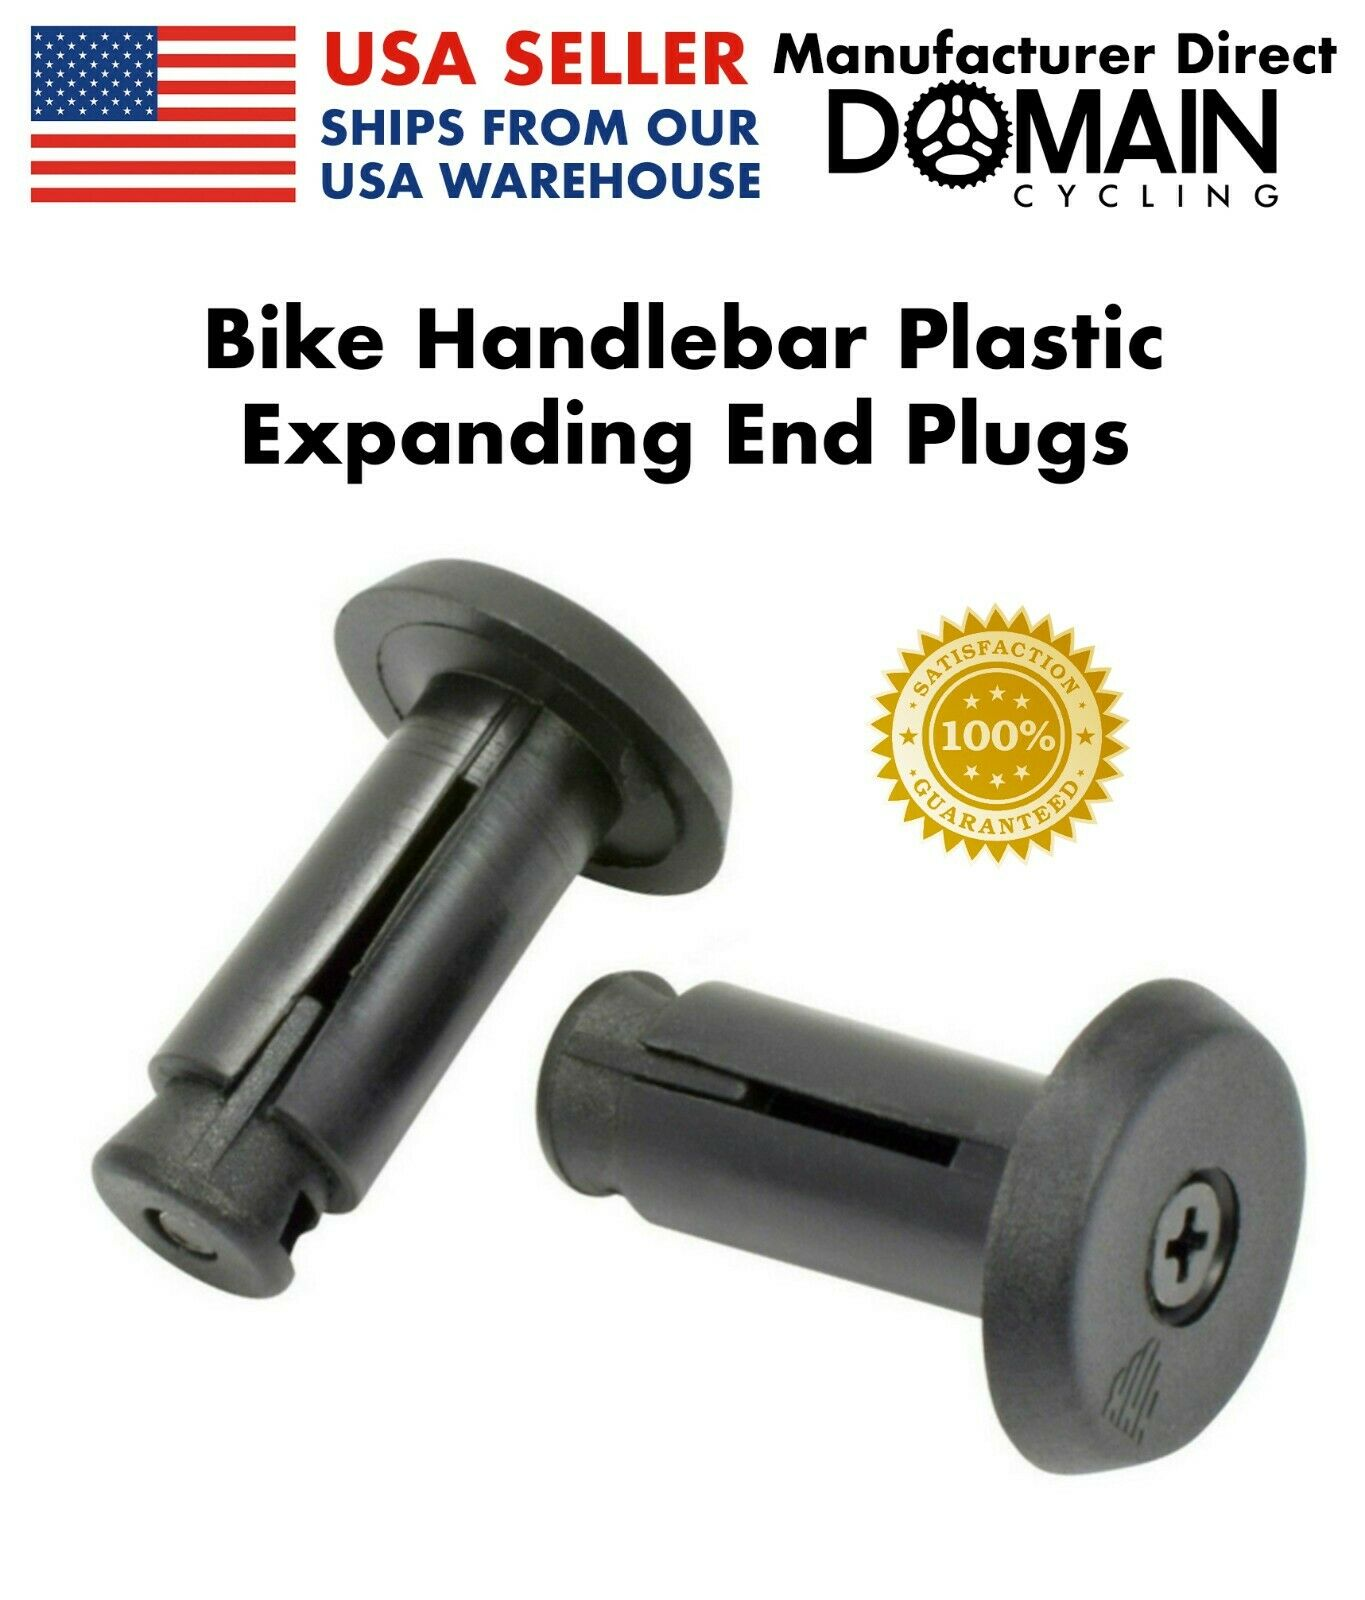 Tough Plastic Barend Plugs for Bike Scooter Grips 200x Handle Bar End Caps